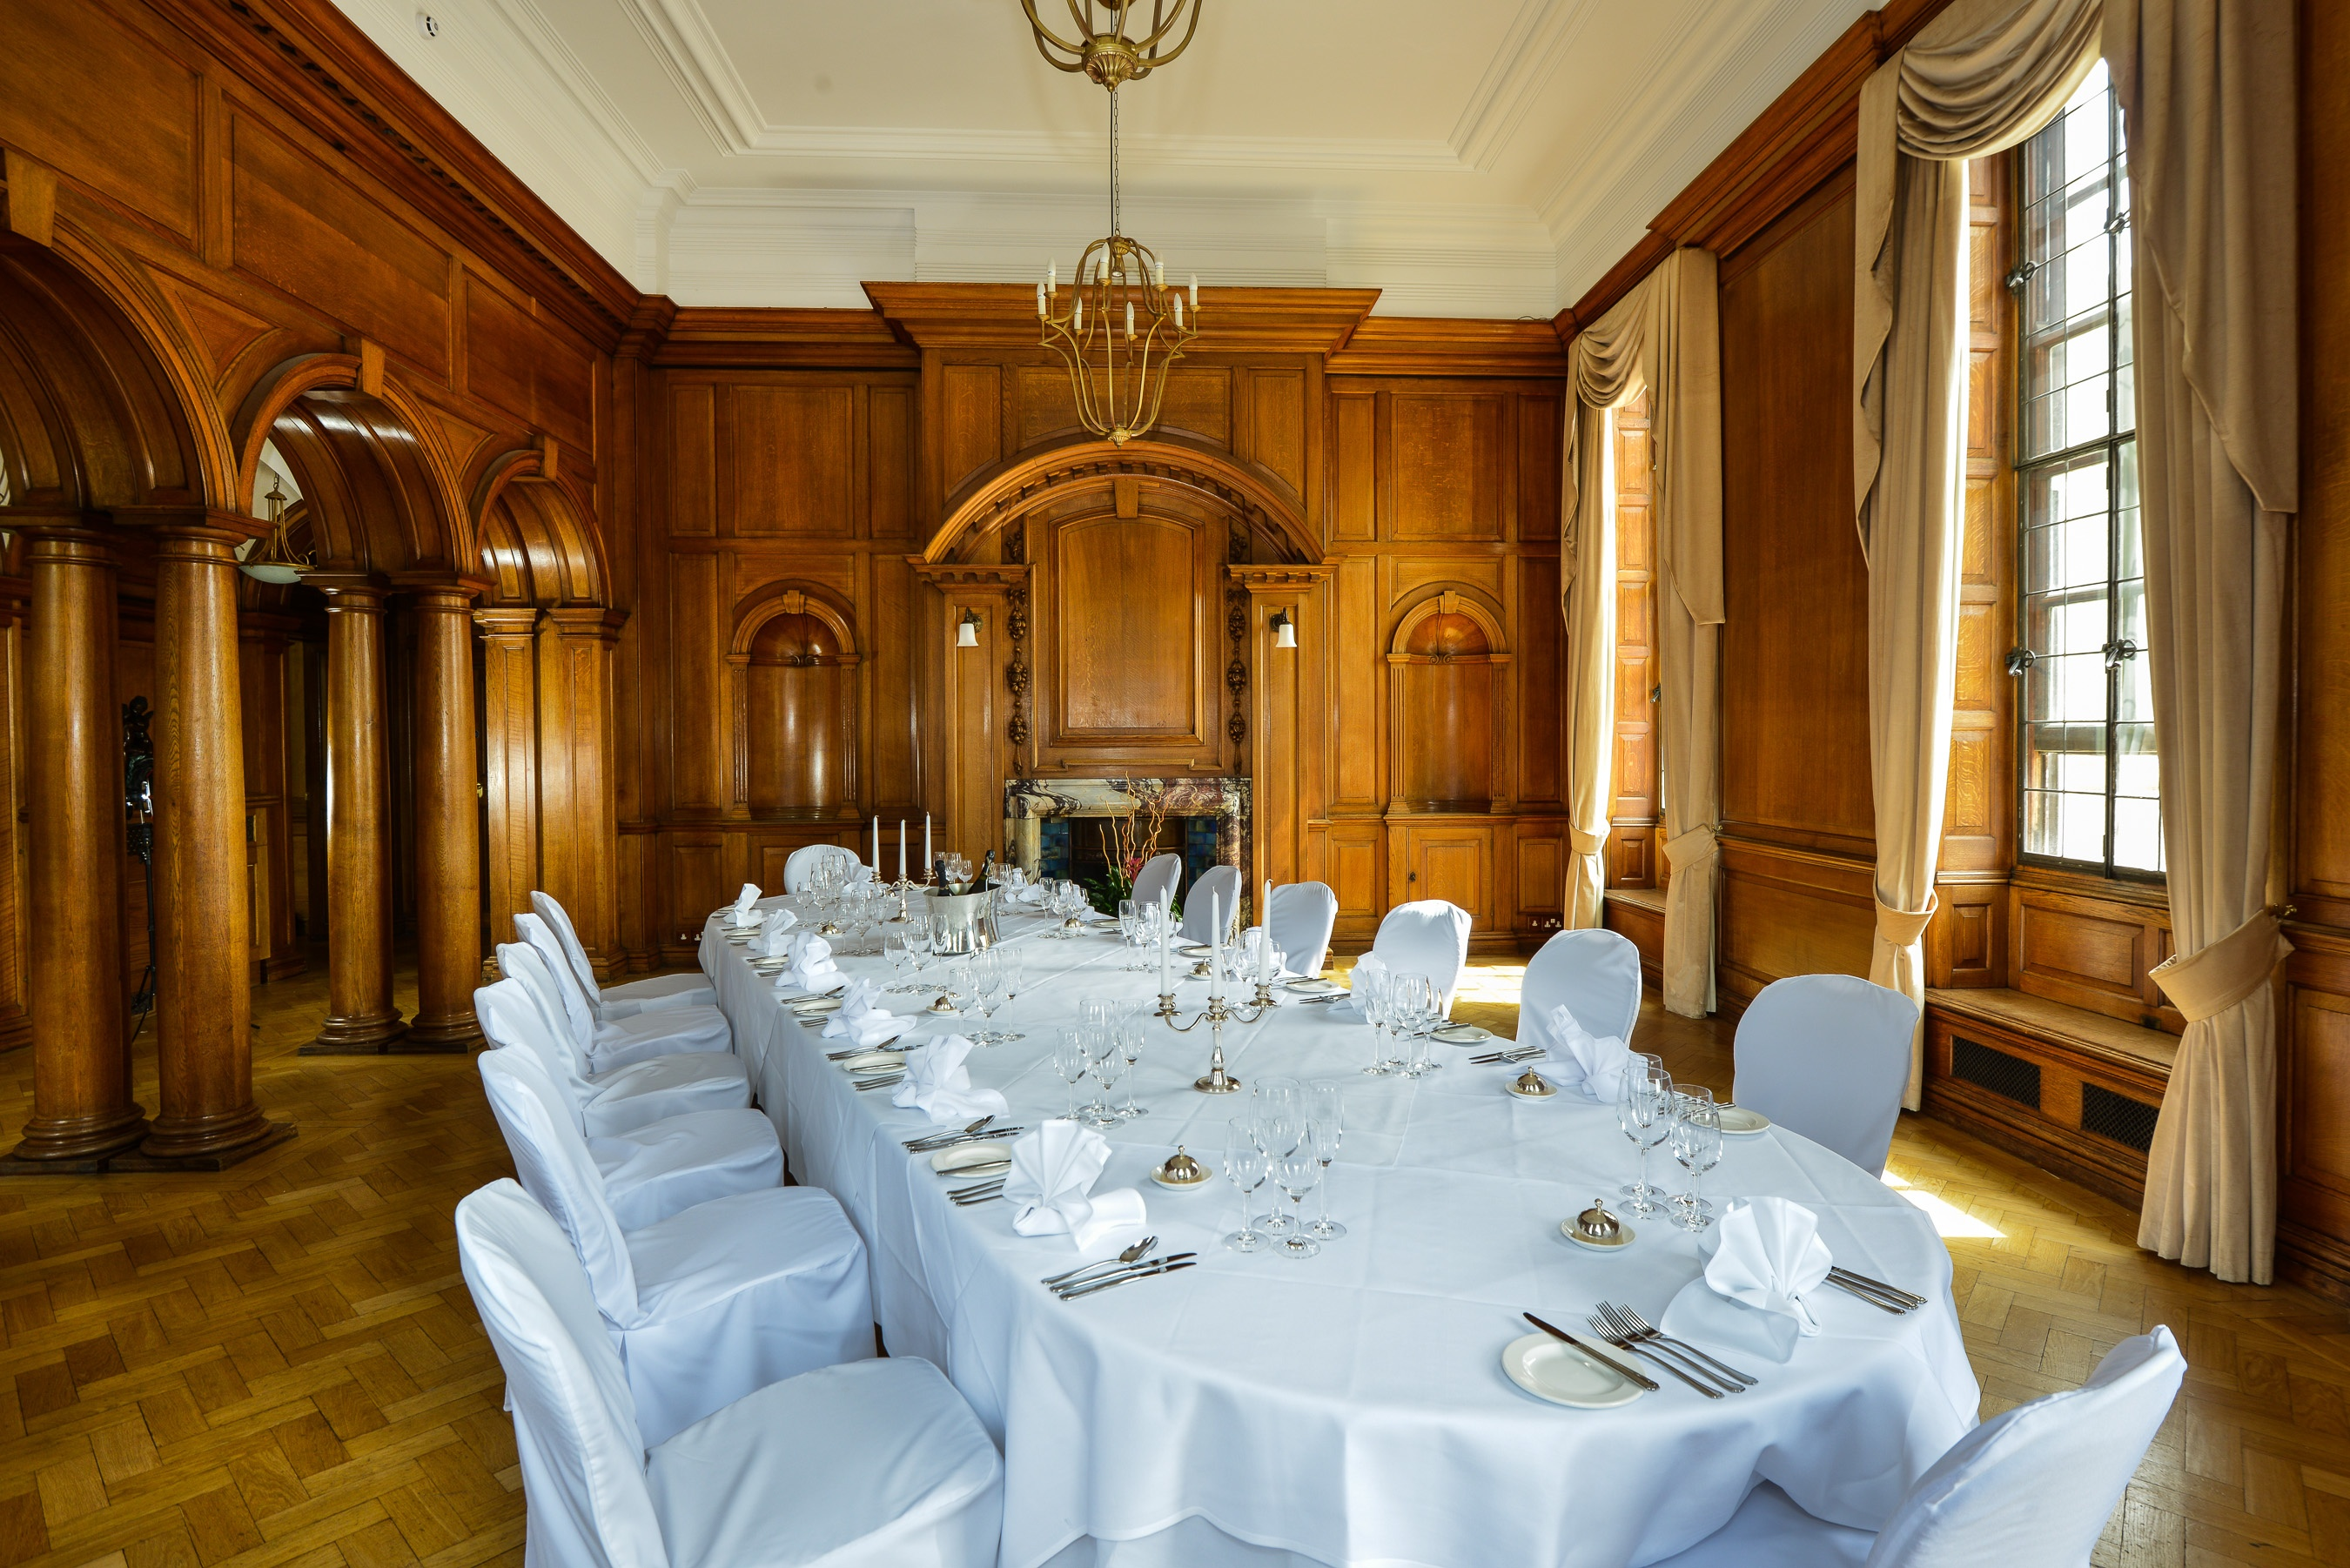 The Grand York Chairman's Suite